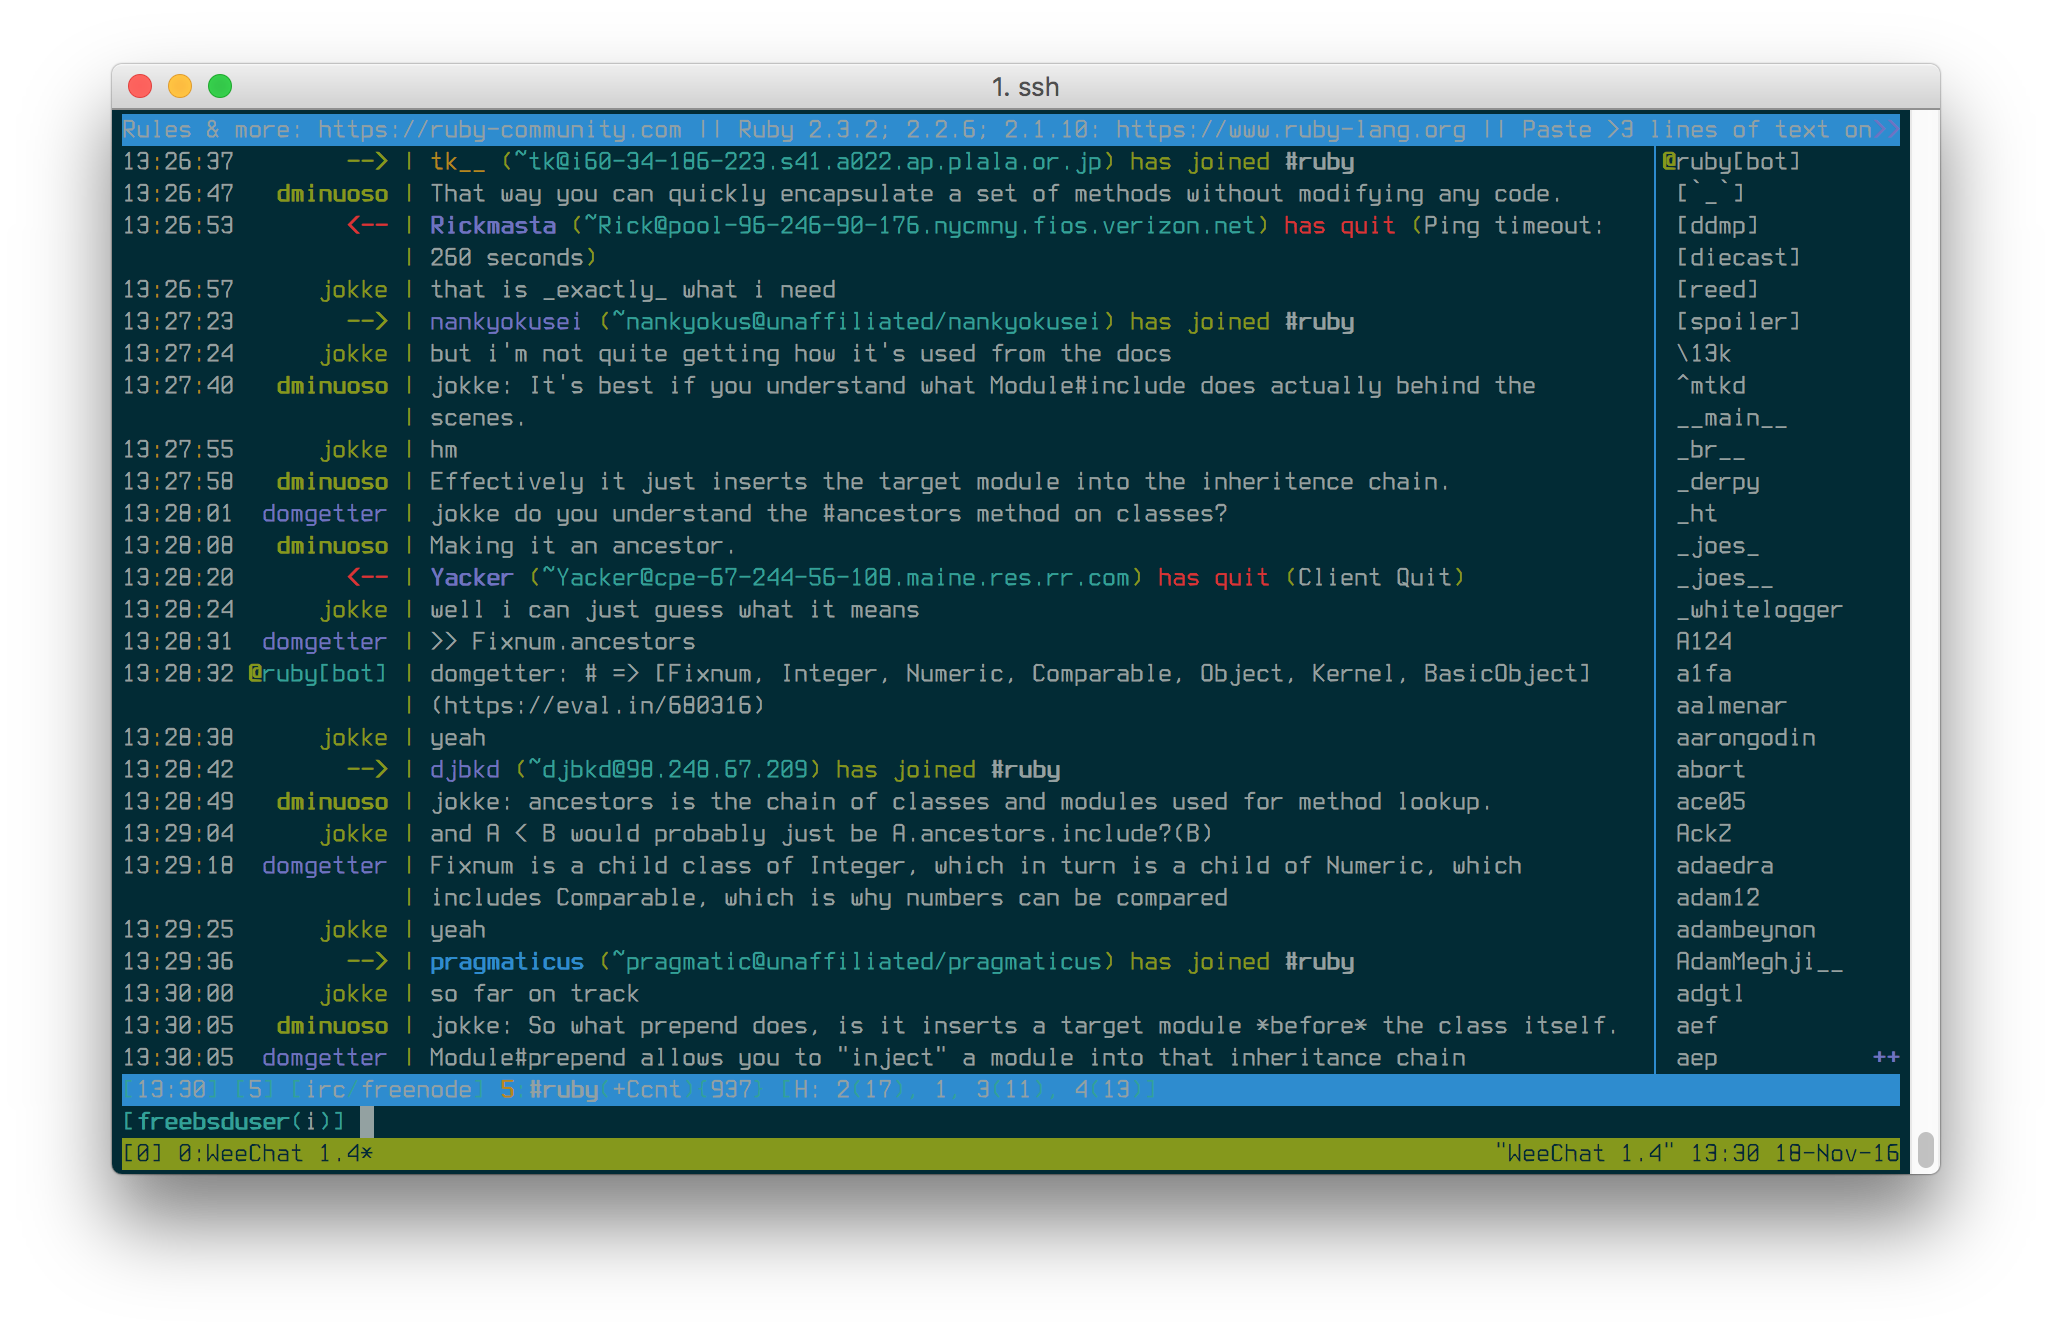 Chatting on weechat w/ tmux